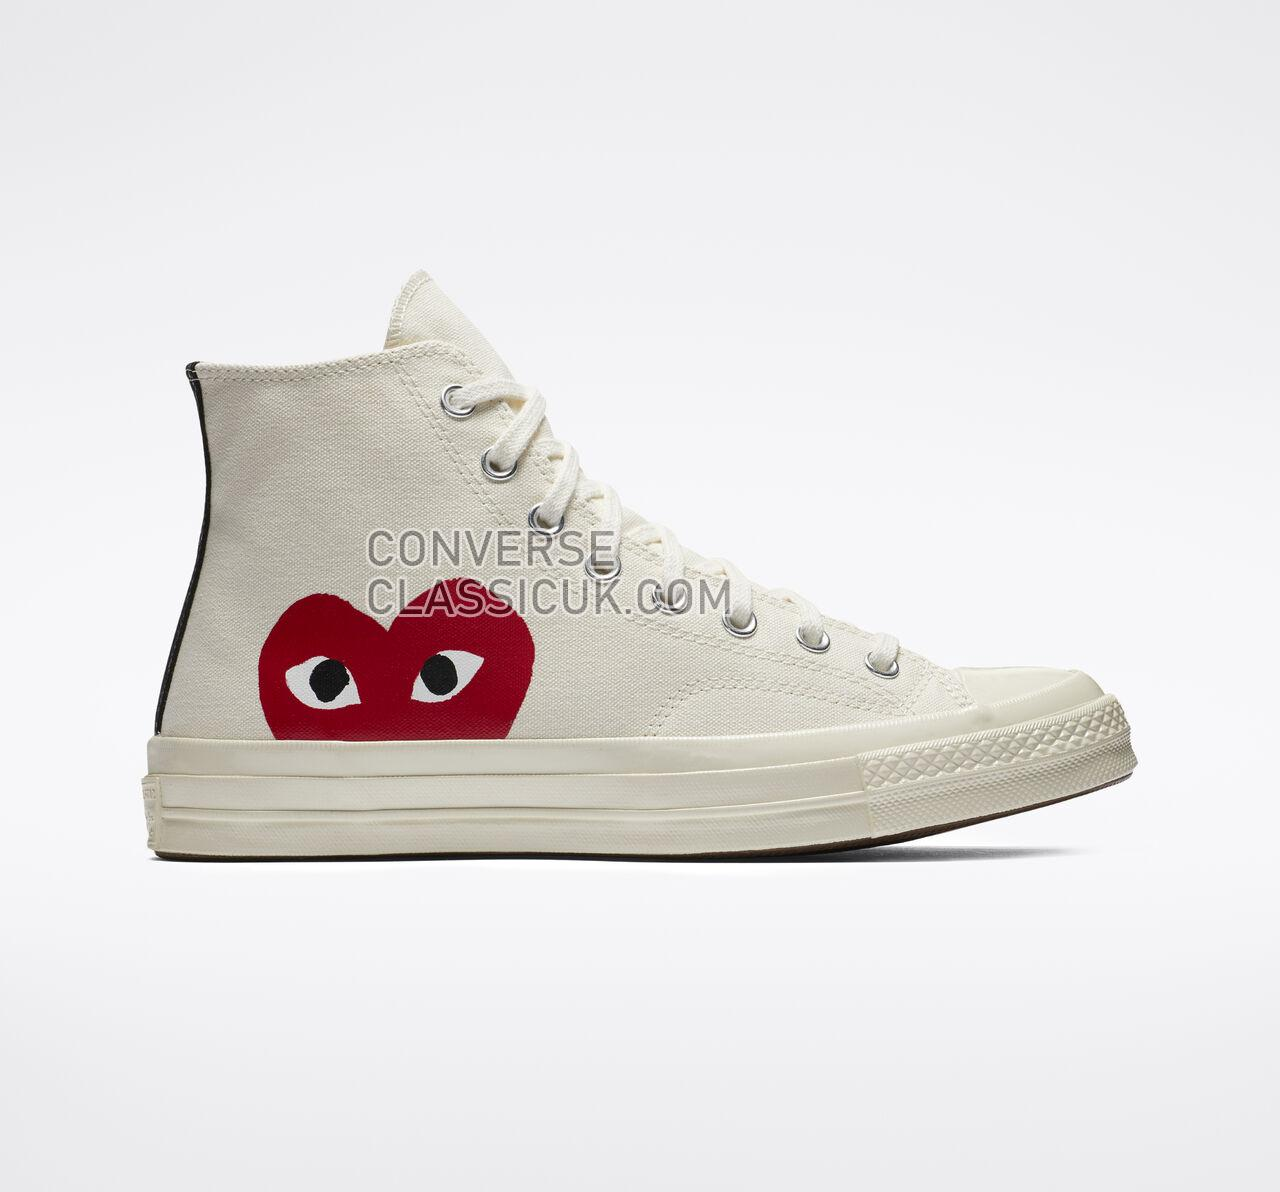 Converse x Comme des Garccedilons PLAY Chuck 70 Mens Womens Unisex 150205C Milk/White/High Risk Red Shoes